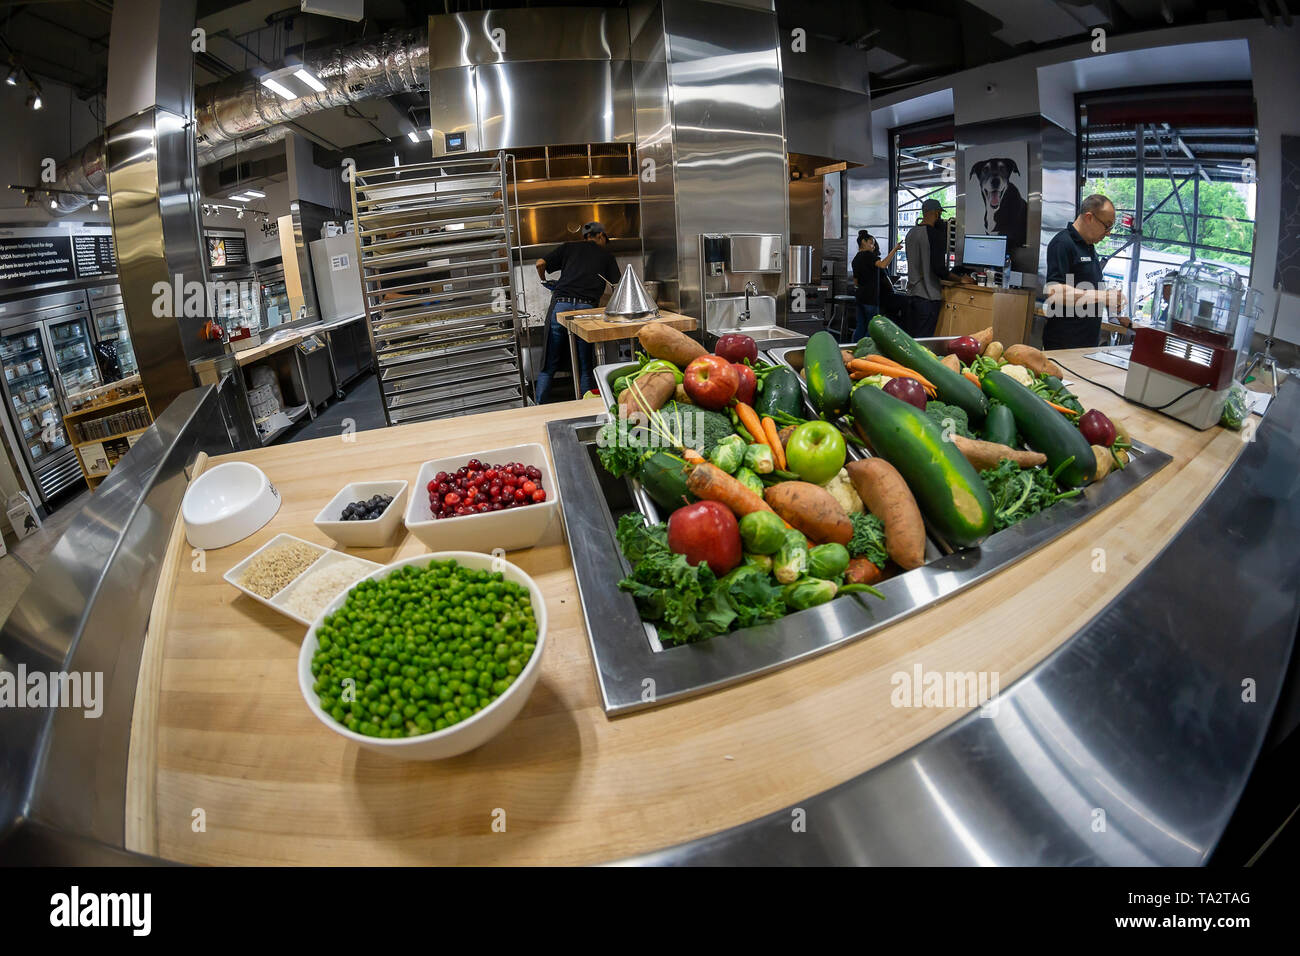 The JustFoodForDogs dog food kitchen is seen inside the Petco store in Union Square in New York on opening day, Friday, May 10, 2019. The ninth kitchen for the Southern California brand, it is their first on the East Coast. The 2000 pounds of fresh dog food it will produce each day is human-grade and nutritionally balanced for your dog. (© Richard B. Levine) - Stock Image